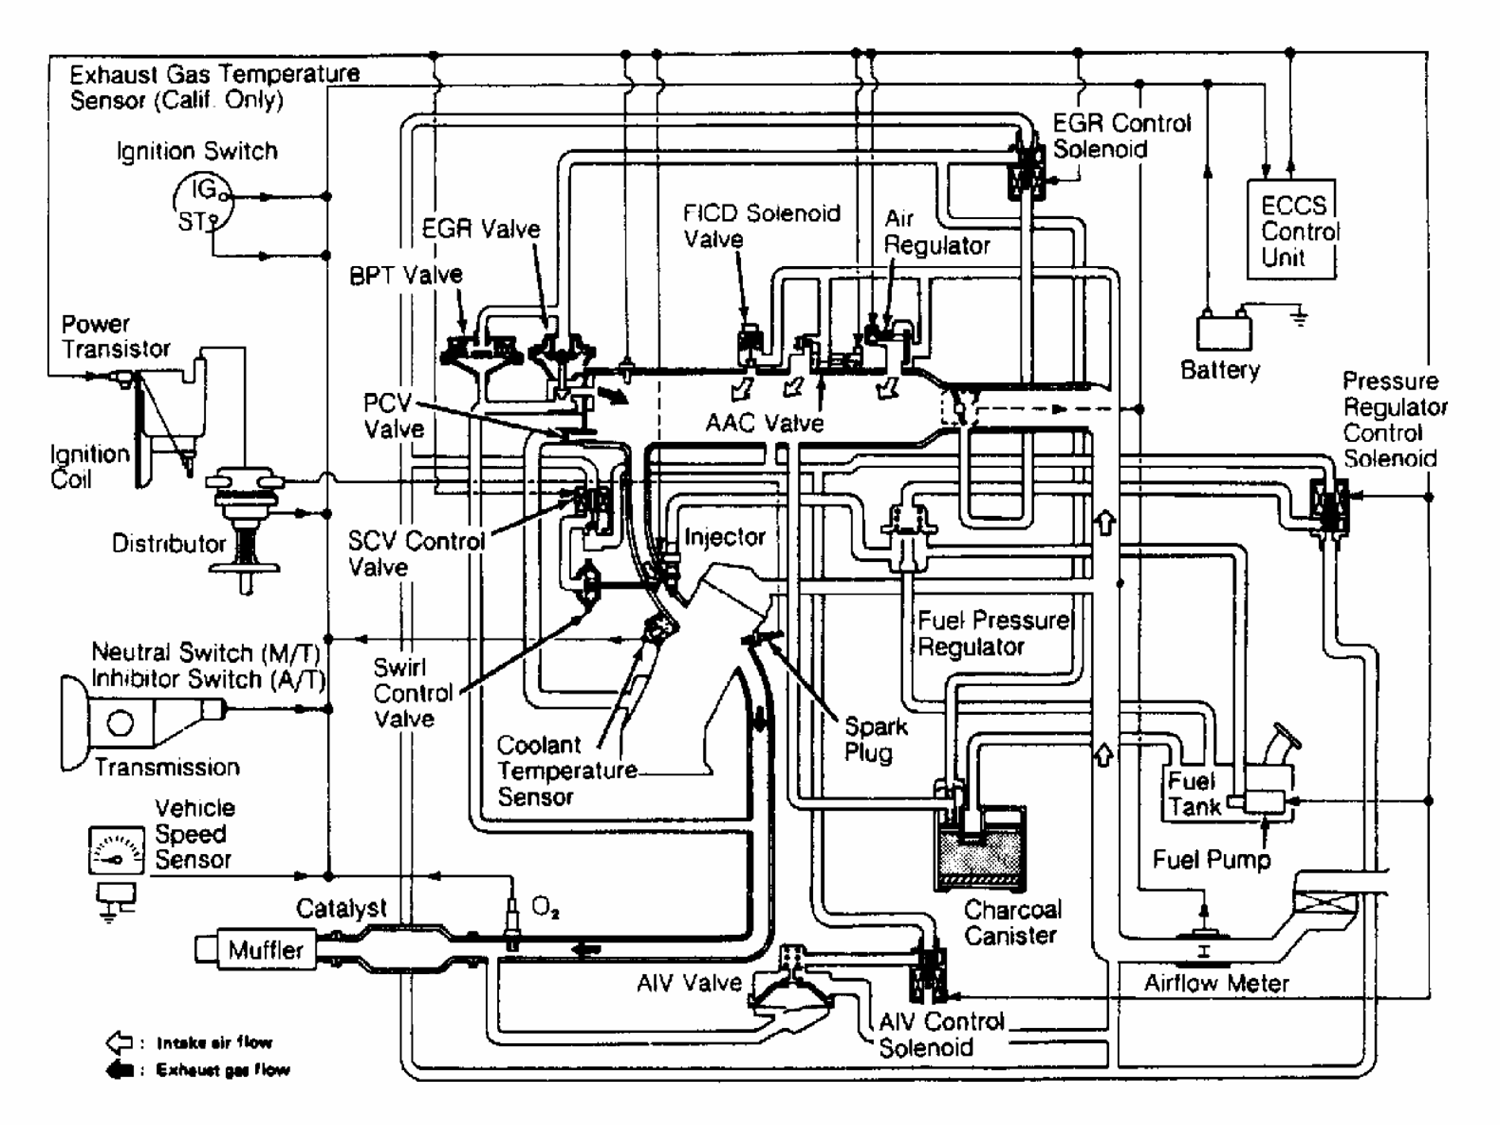 1990 240sx Engine Diagram : drawing 88 nissan engine ~ A.2002-acura-tl-radio.info Haus und Dekorationen